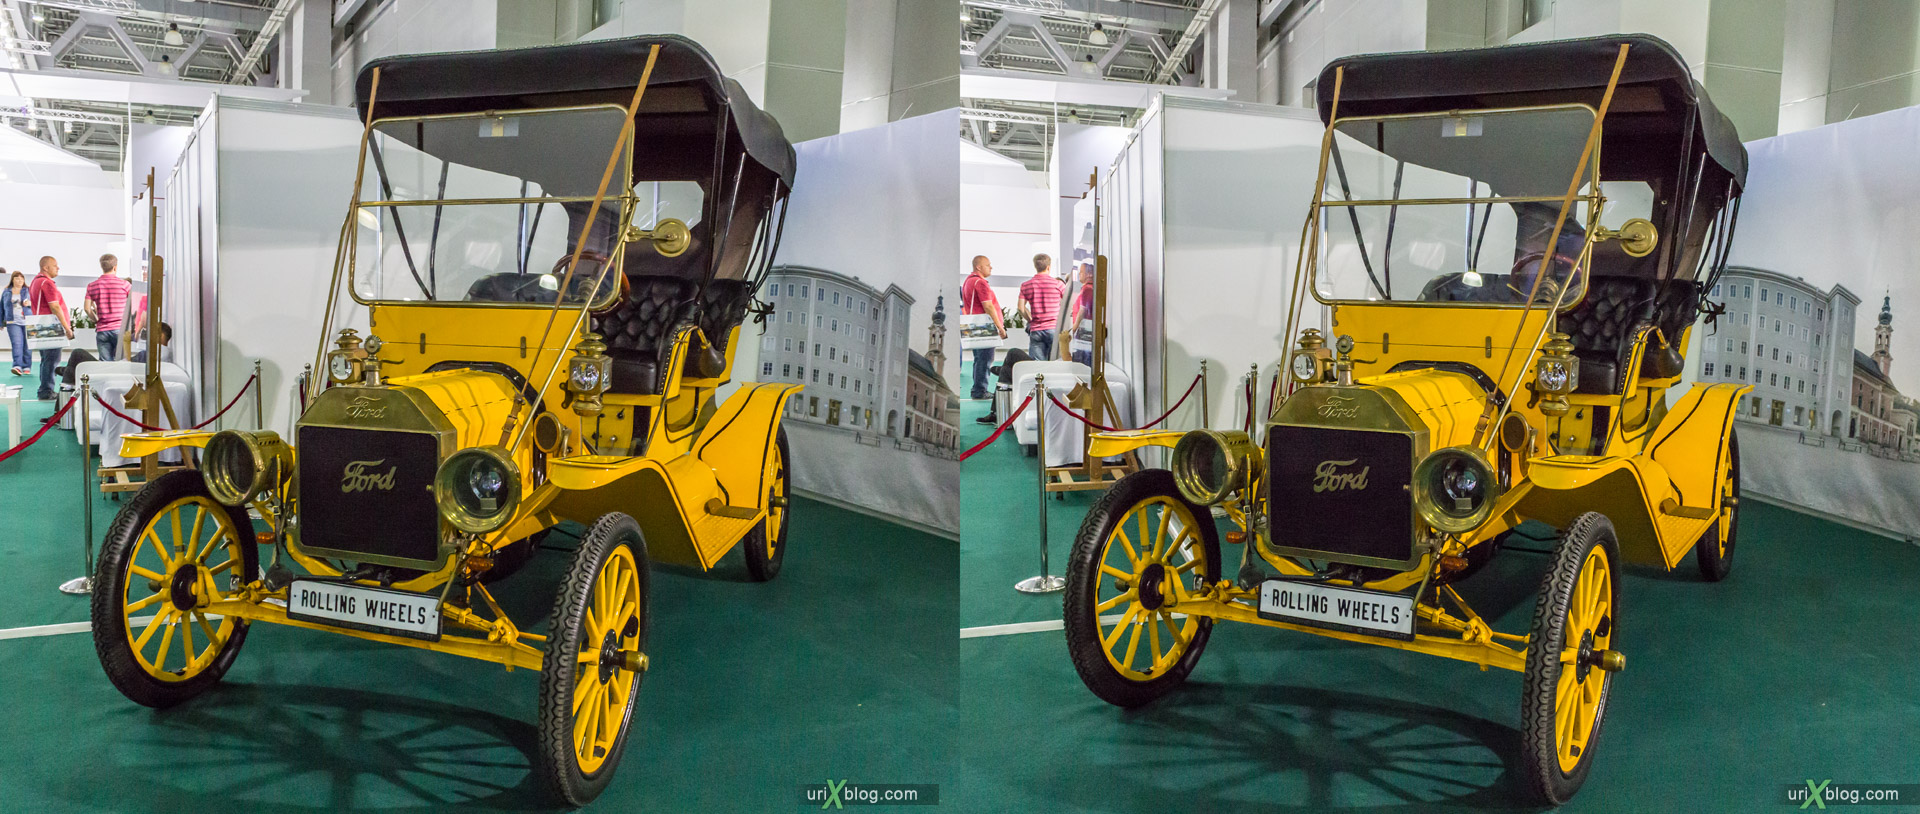 2014, Old Ford, Moscow International Automobile Salon, MIAS, Crocus Expo, Moscow, Russia, augest, 3D, stereo pair, cross-eyed, crossview, cross view stereo pair, stereoscopic